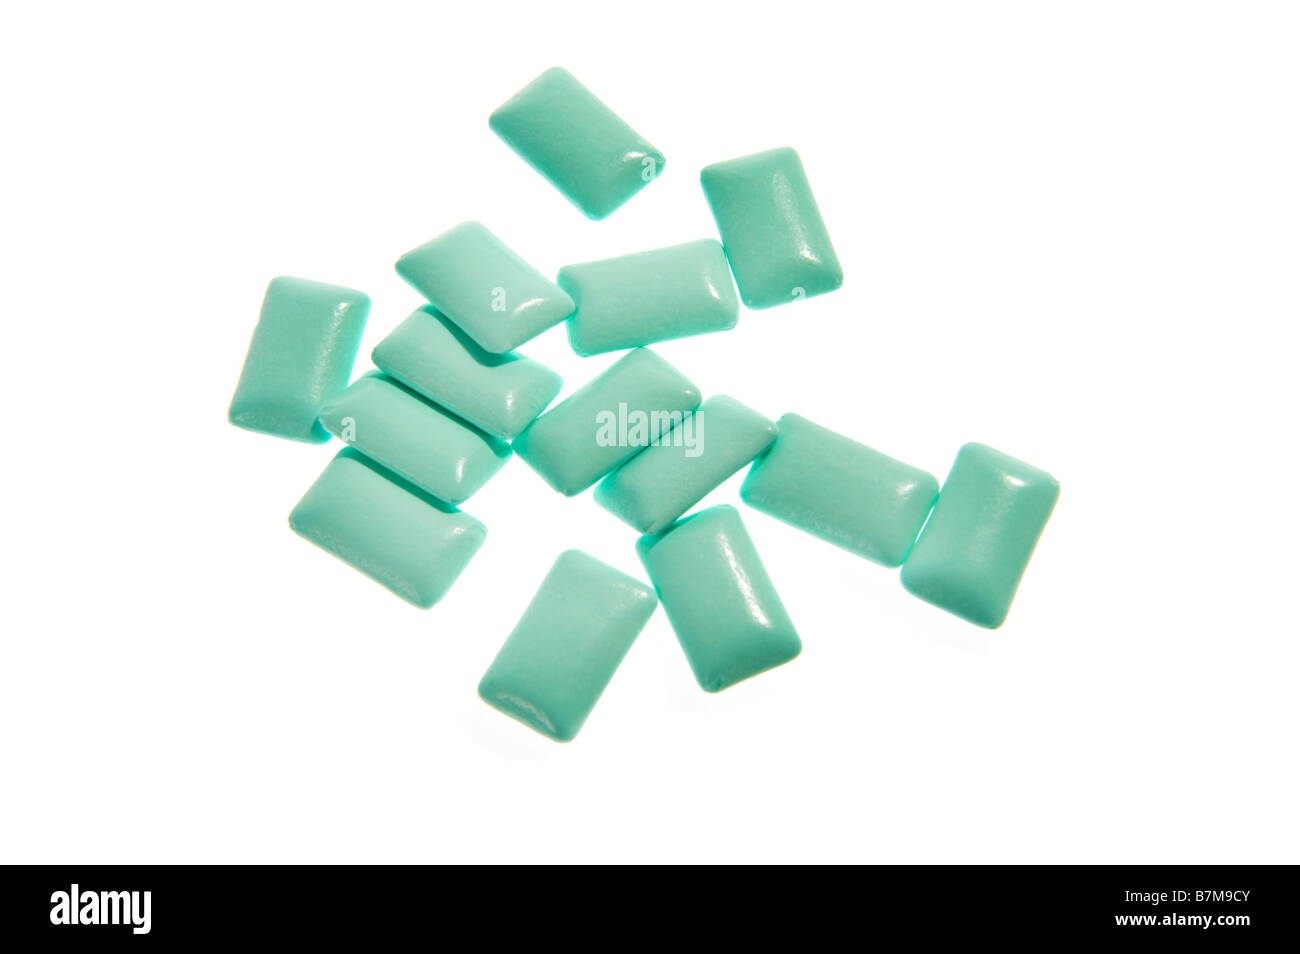 chewing gum bubble gum green blue cyan on white background pieces jelly baby candy jelly babies gum gummi fresh - Stock Image